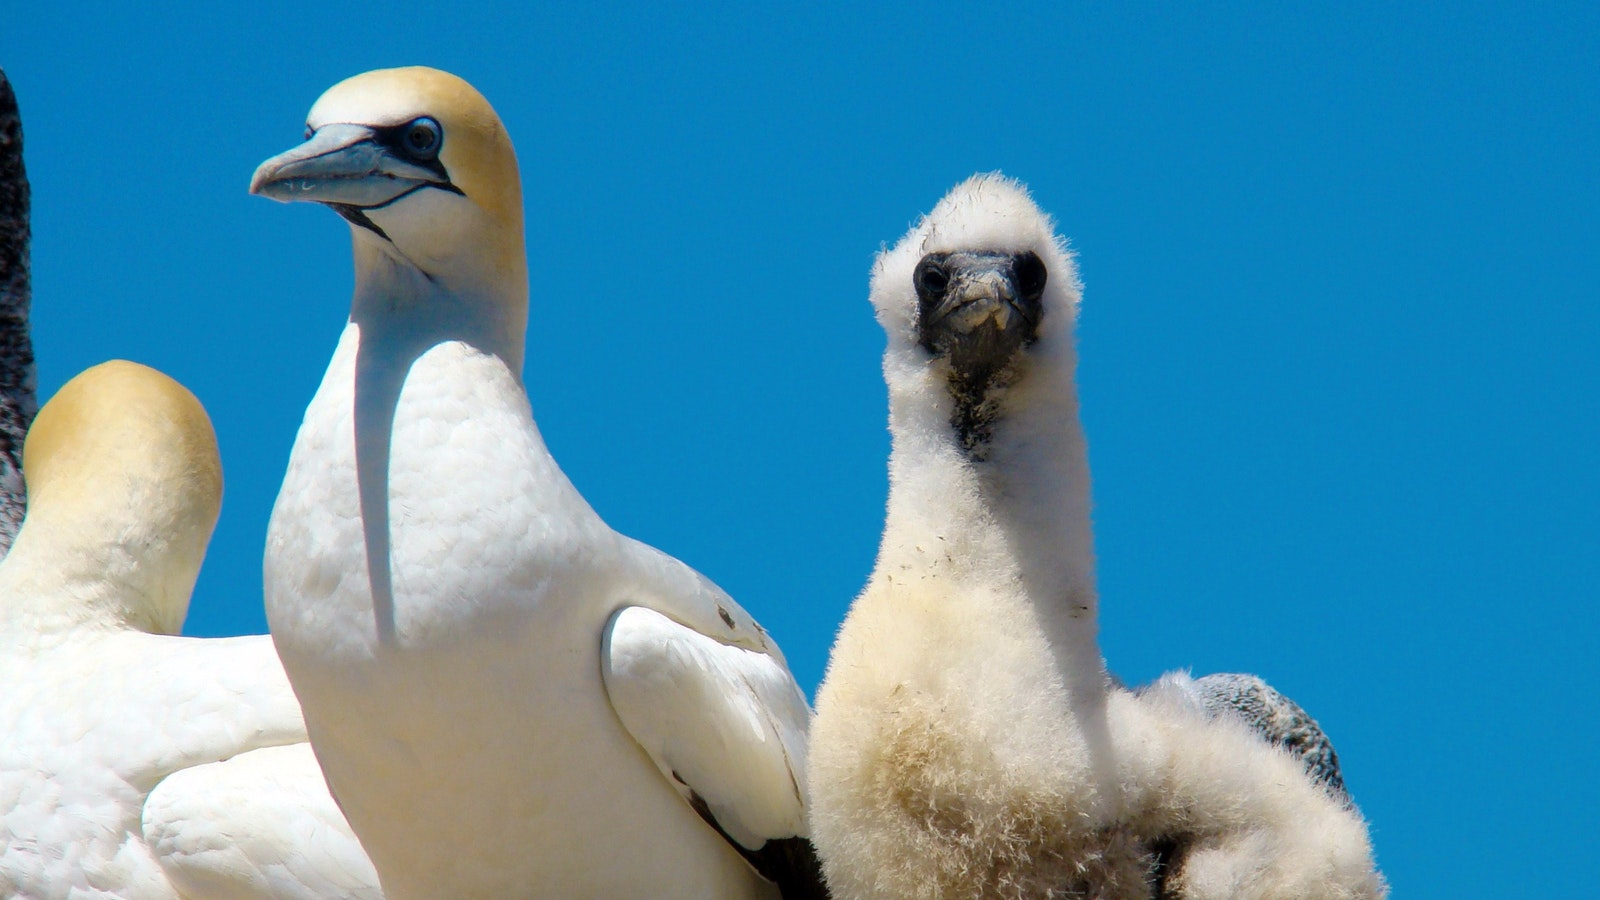 Australasian Gannet and Chick